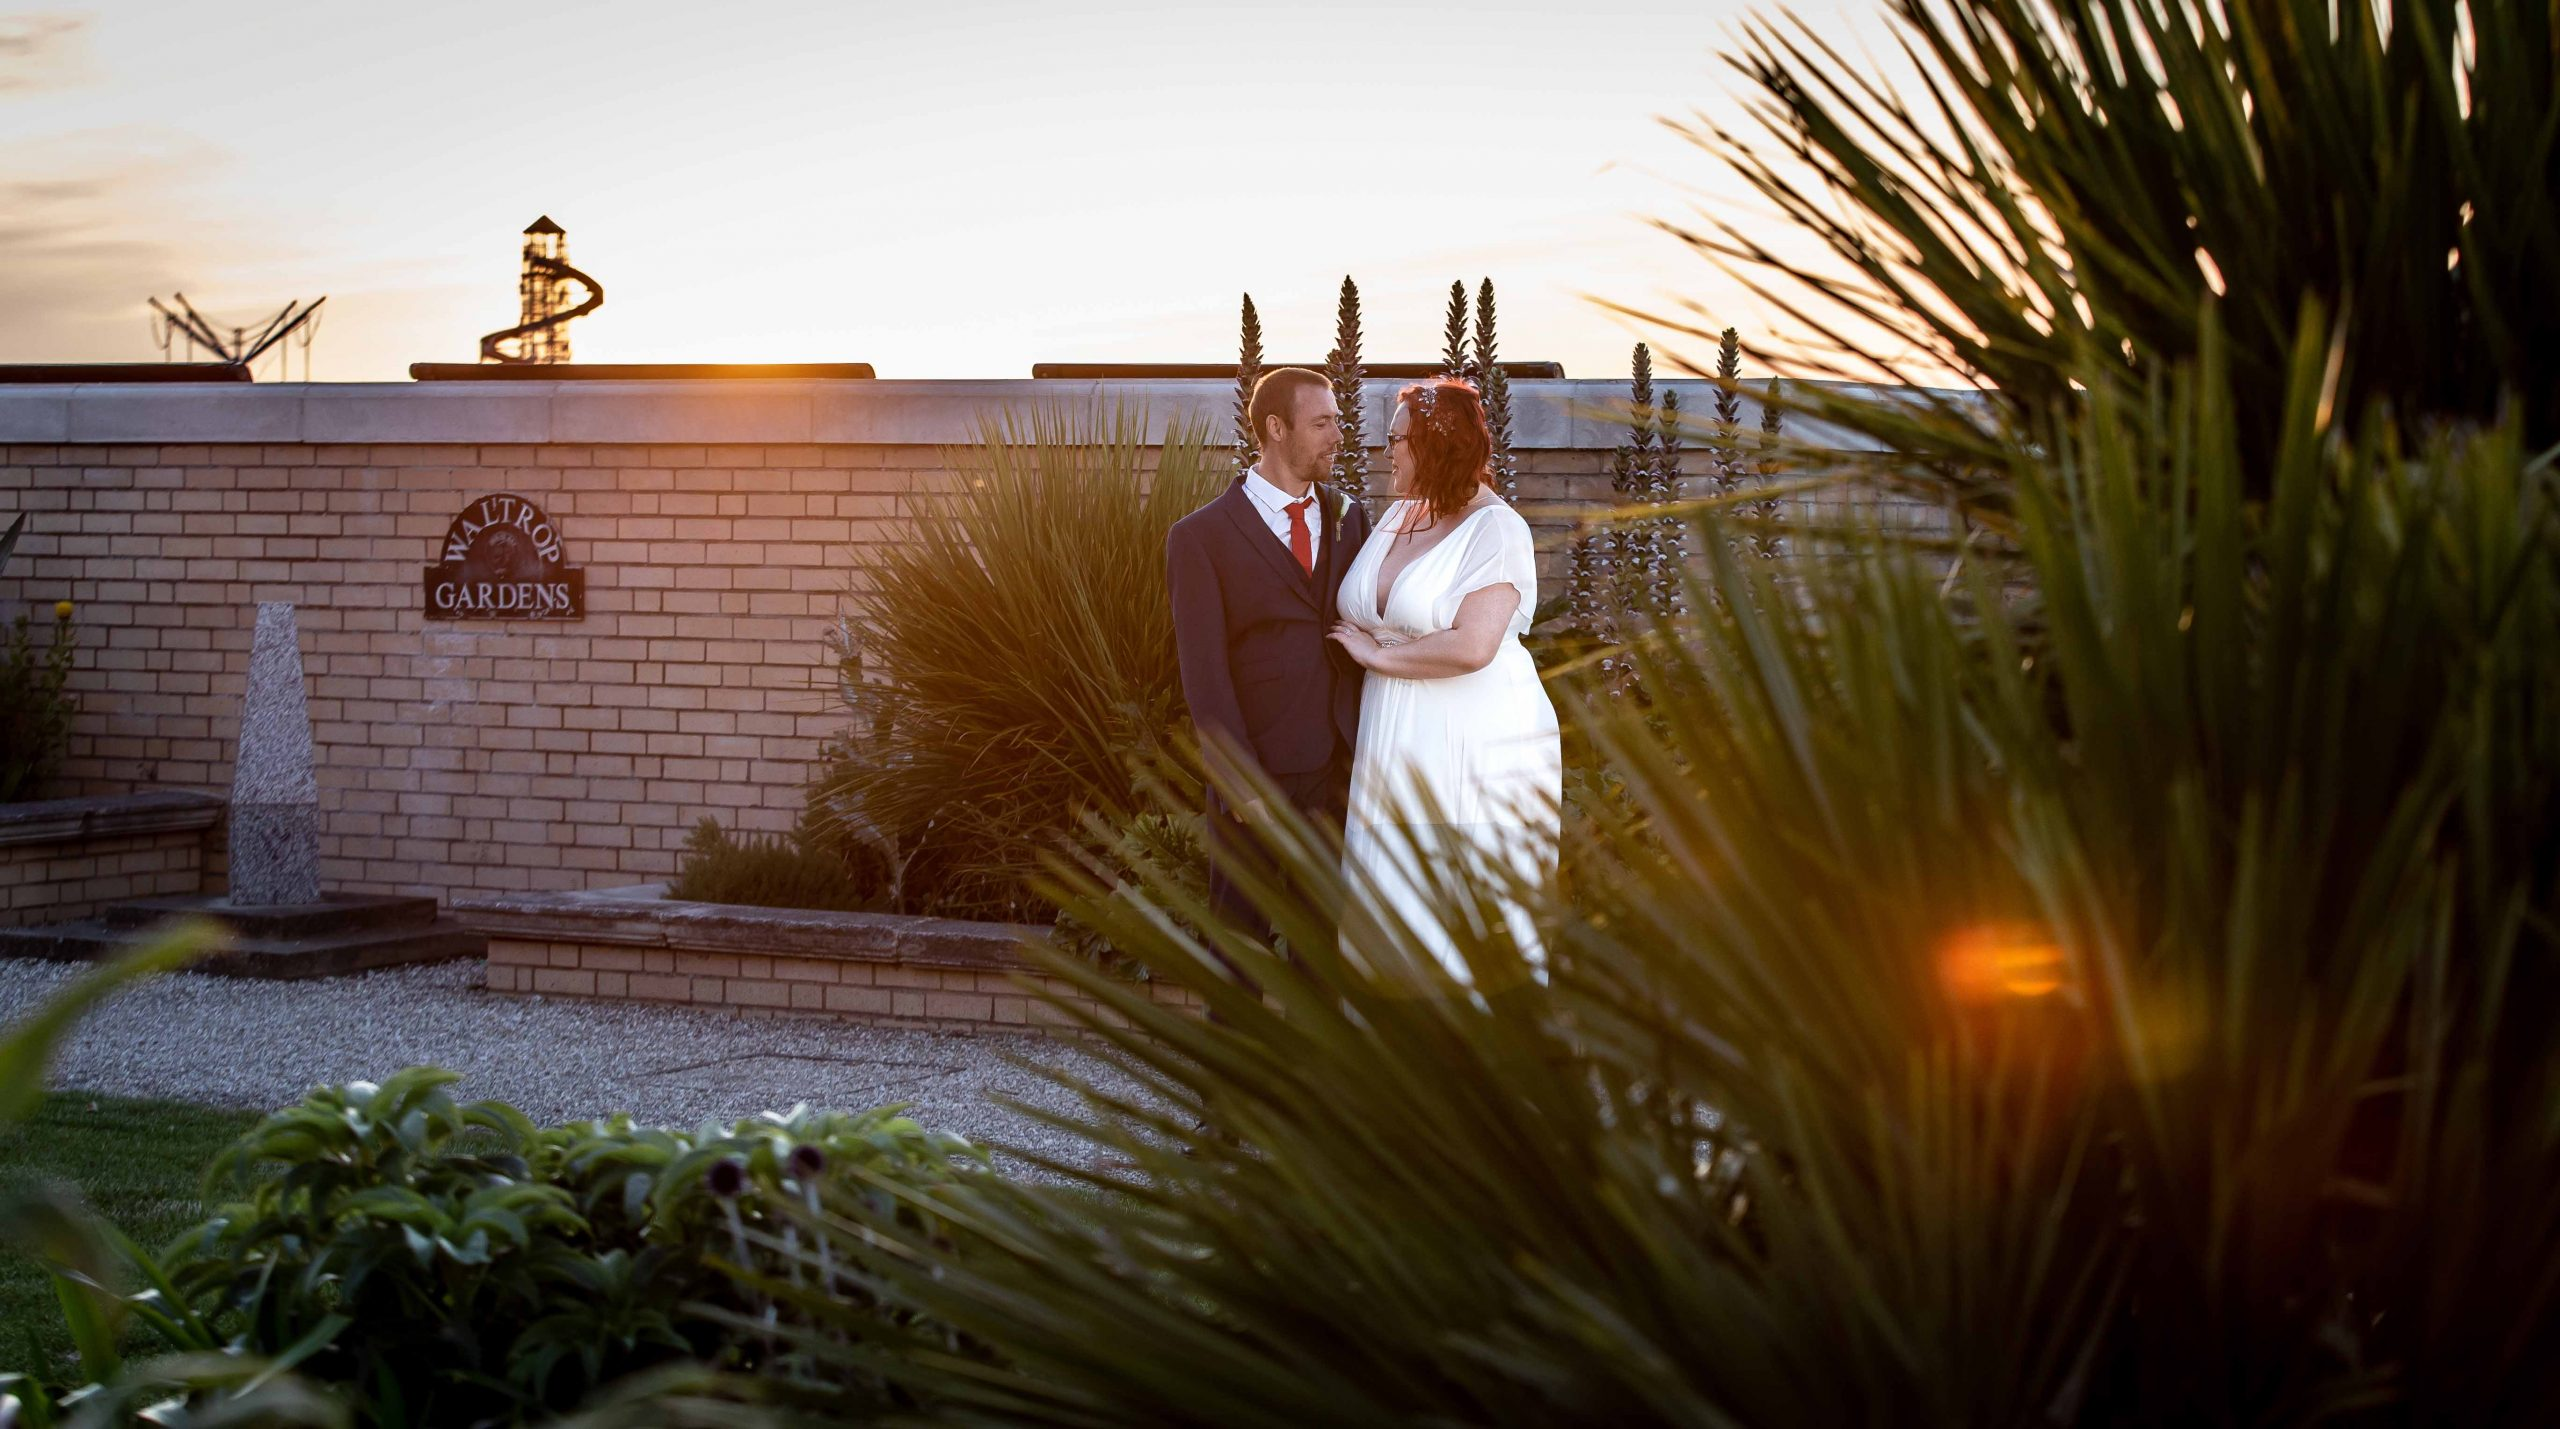 bride and groom wedding portrait in seafront gardens in herne bay